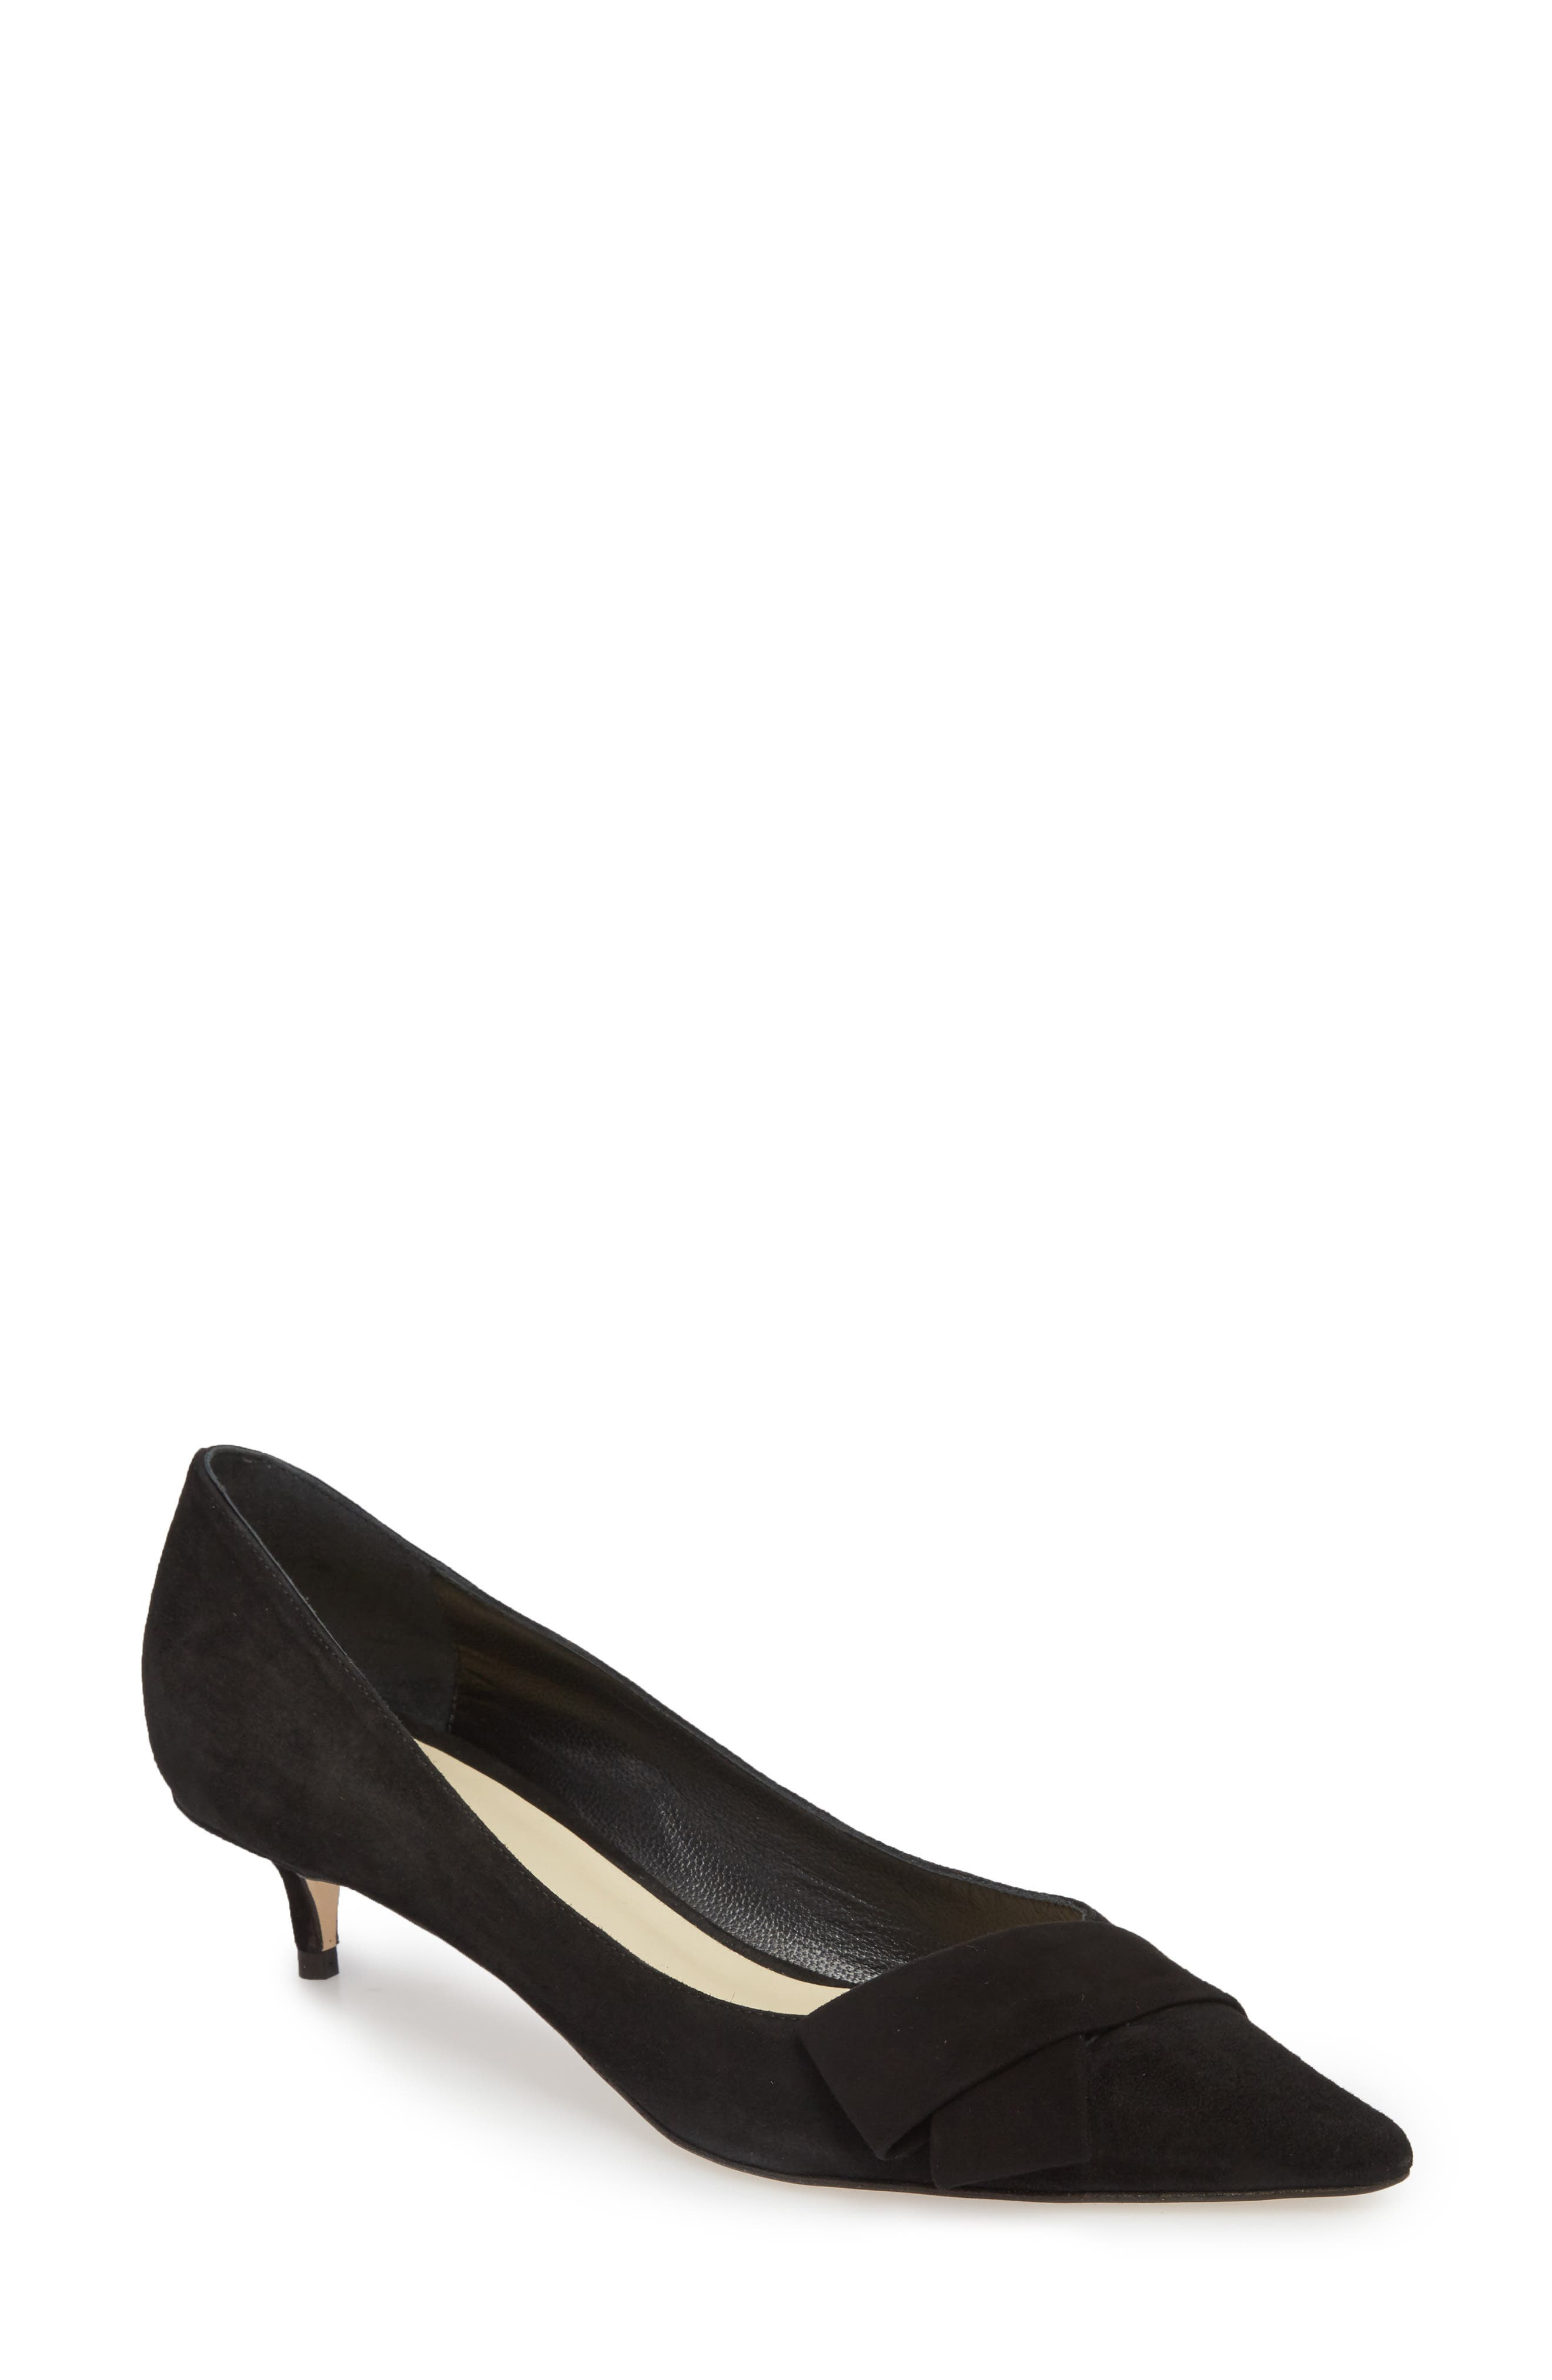 Butter Bliss Pointy Toe Pump,                         Main,                         color,